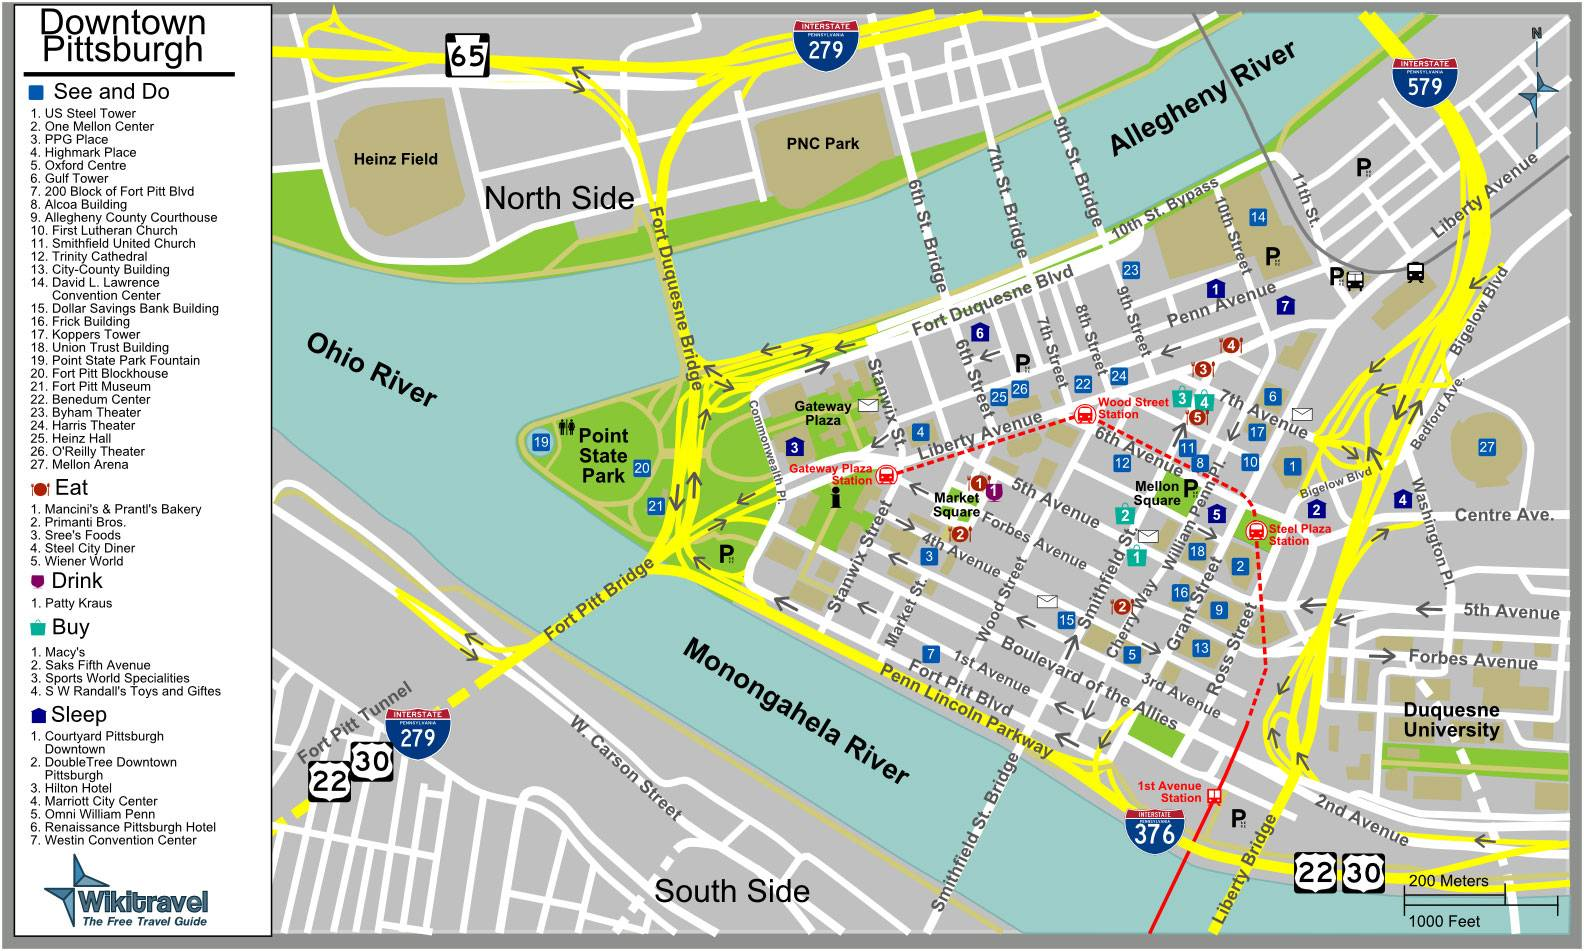 Downtown Pittsburgh Map Large Pittsburgh Maps for Free Download and Print | High  Downtown Pittsburgh Map